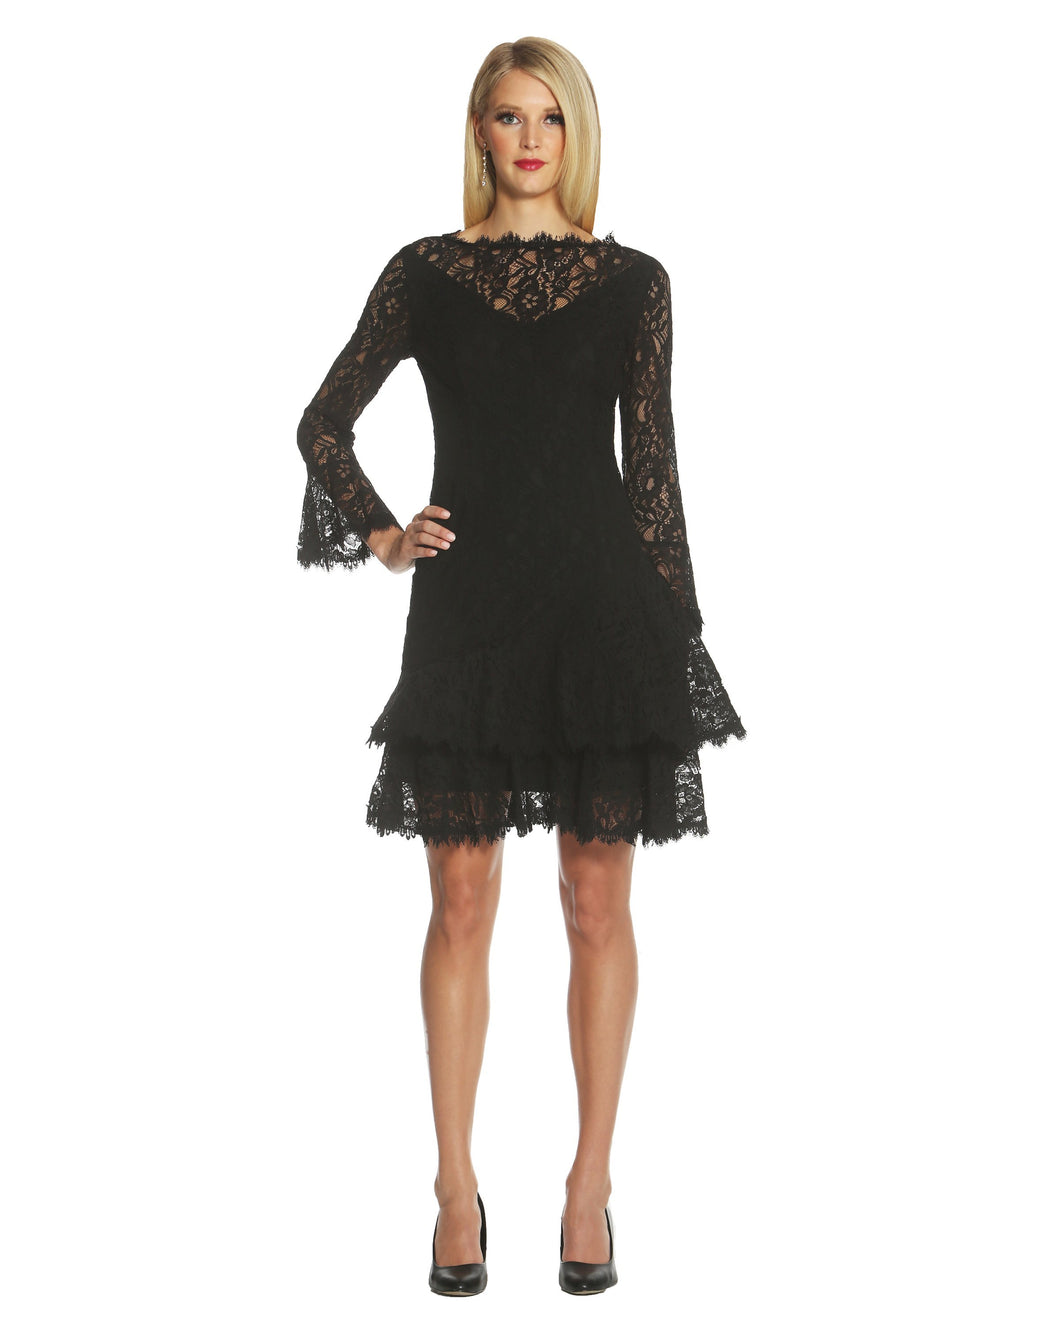 Double Ruffle Lace Dress Black - 1